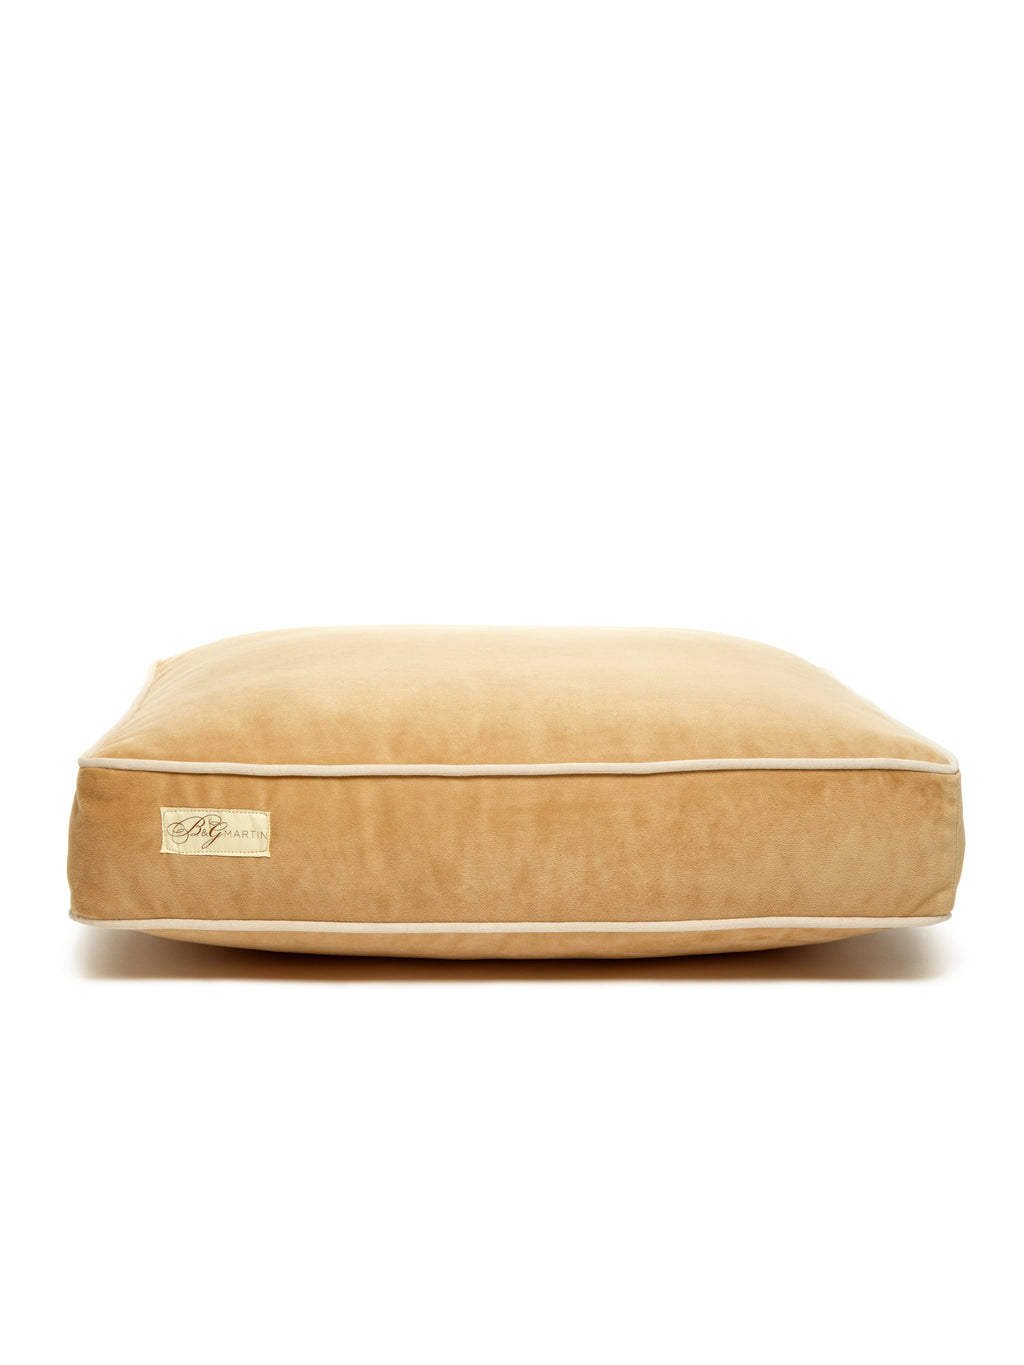 B&G Martin Microsuede Honey Water Resistant Buckwheat Detail Ultra Luxe Pet Dog Bed (Personalize)